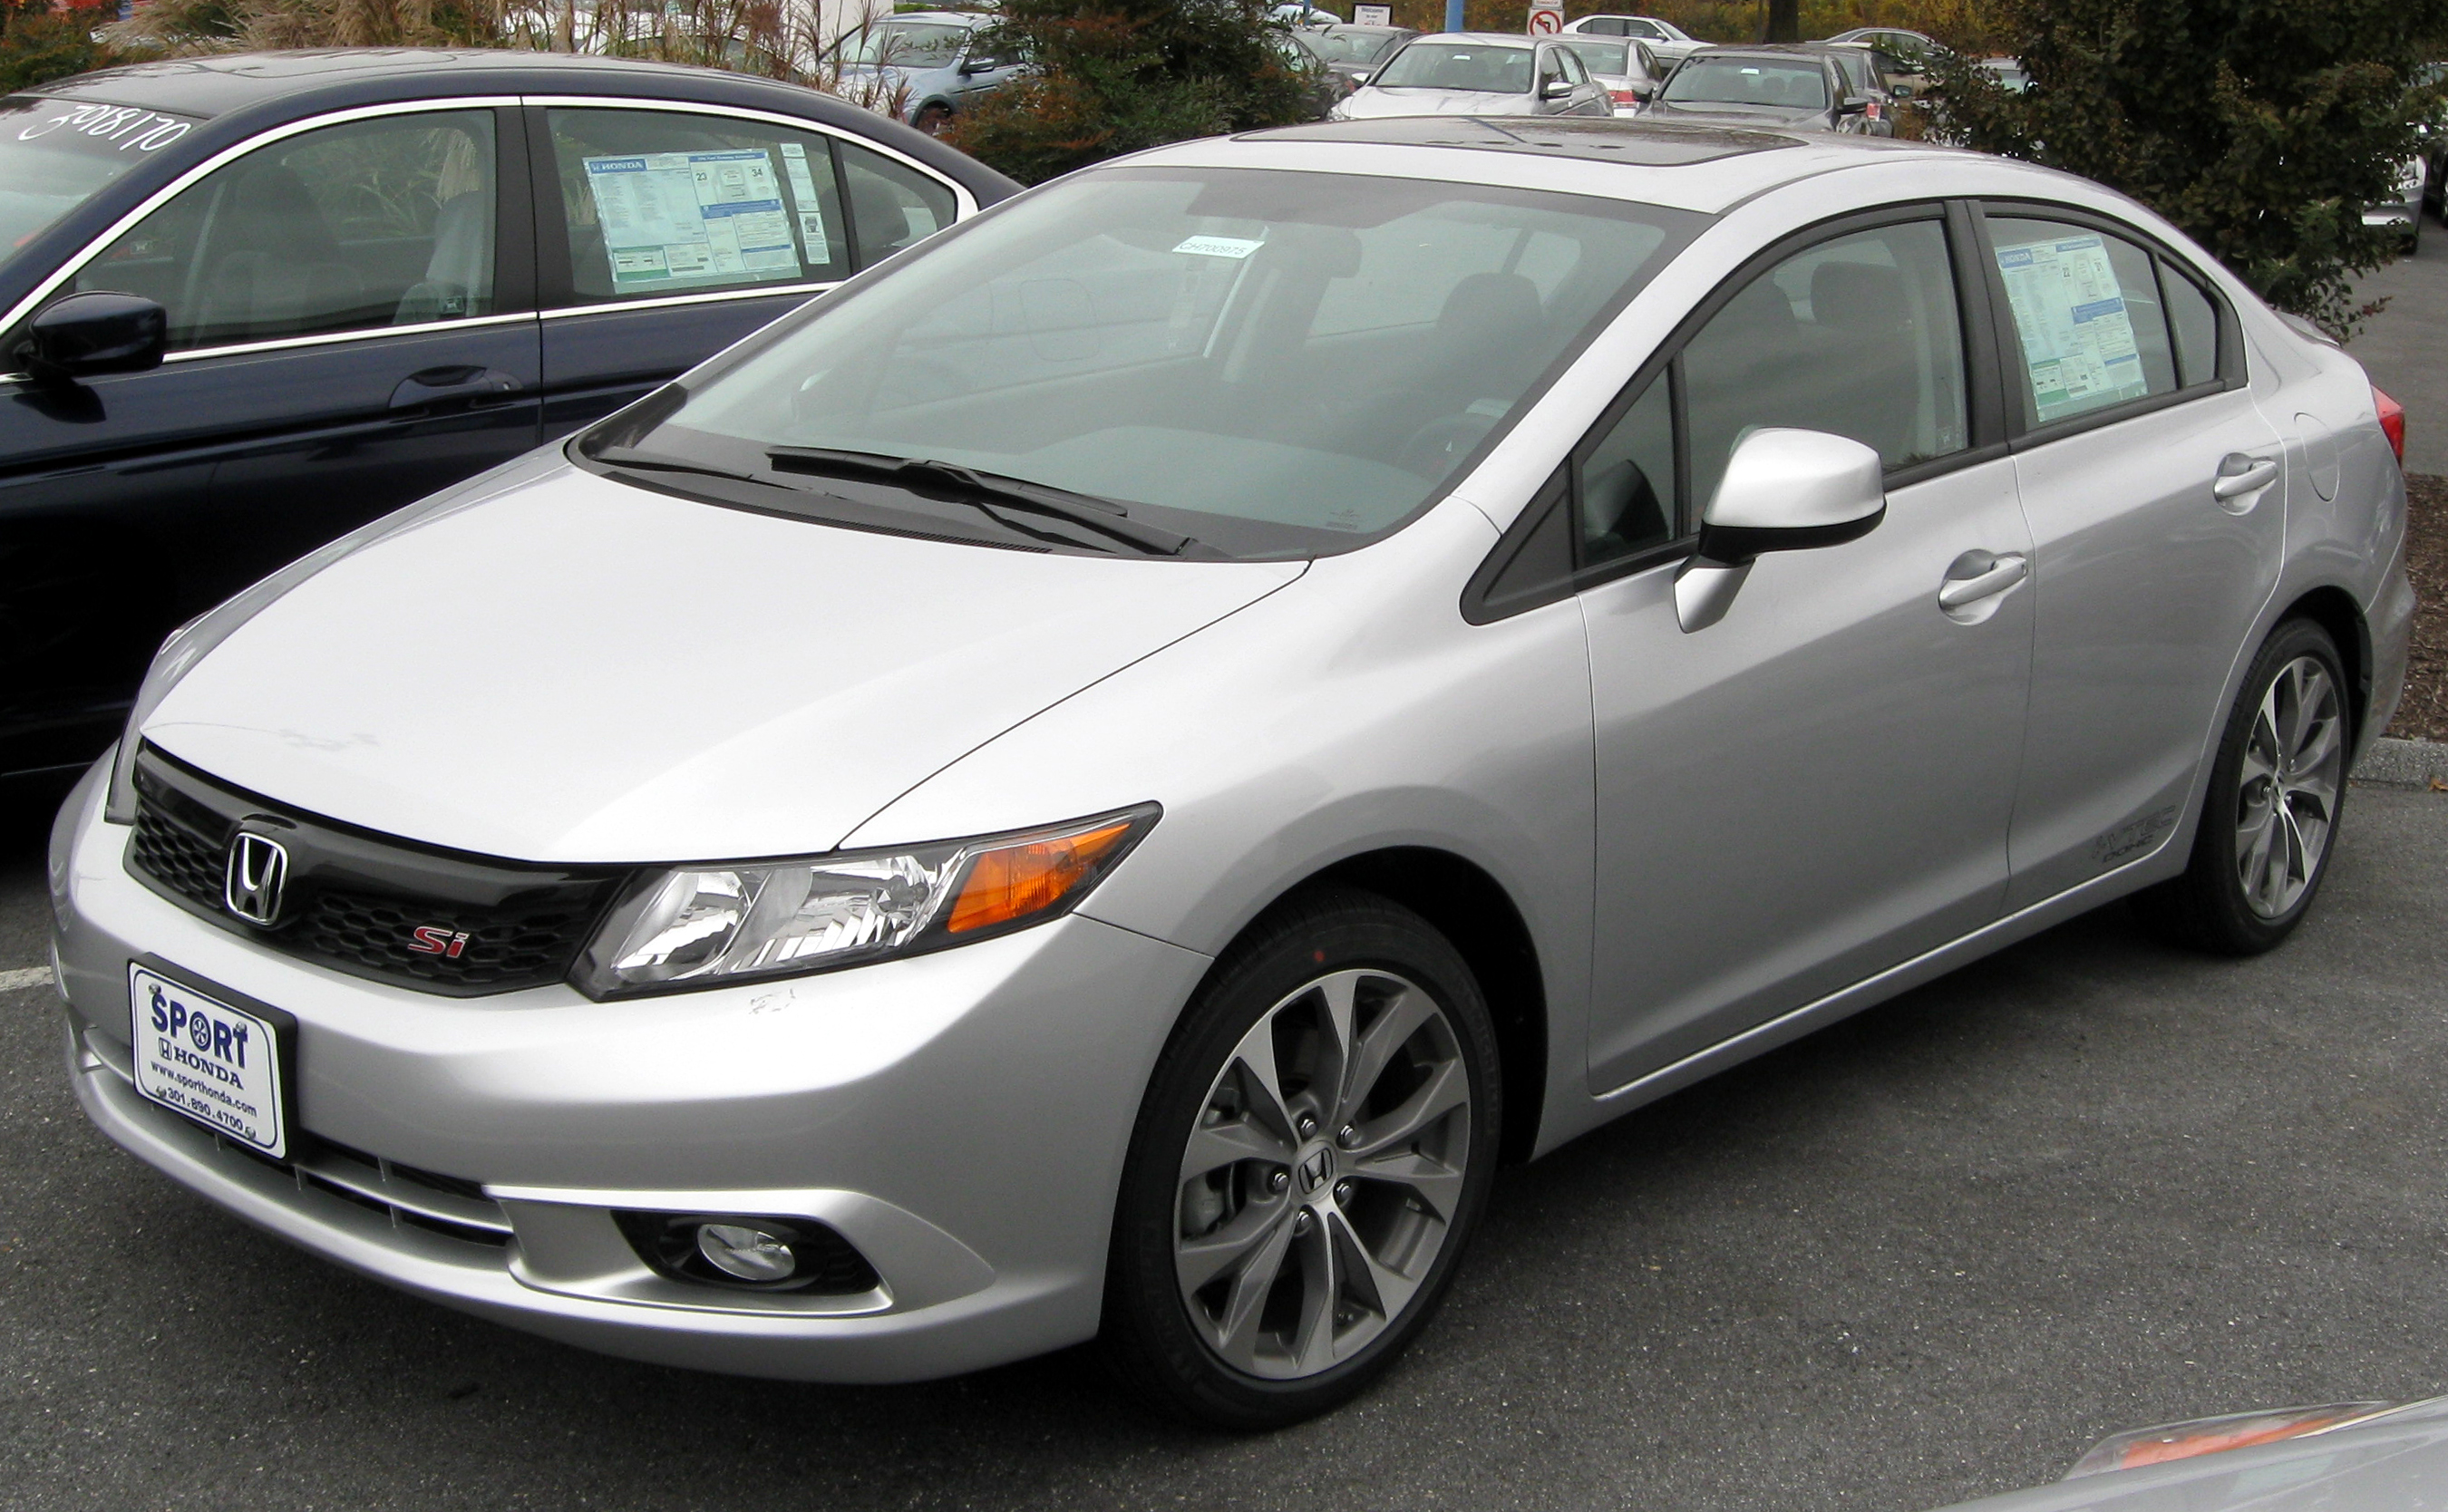 2011 Honda Civic Si Sedan